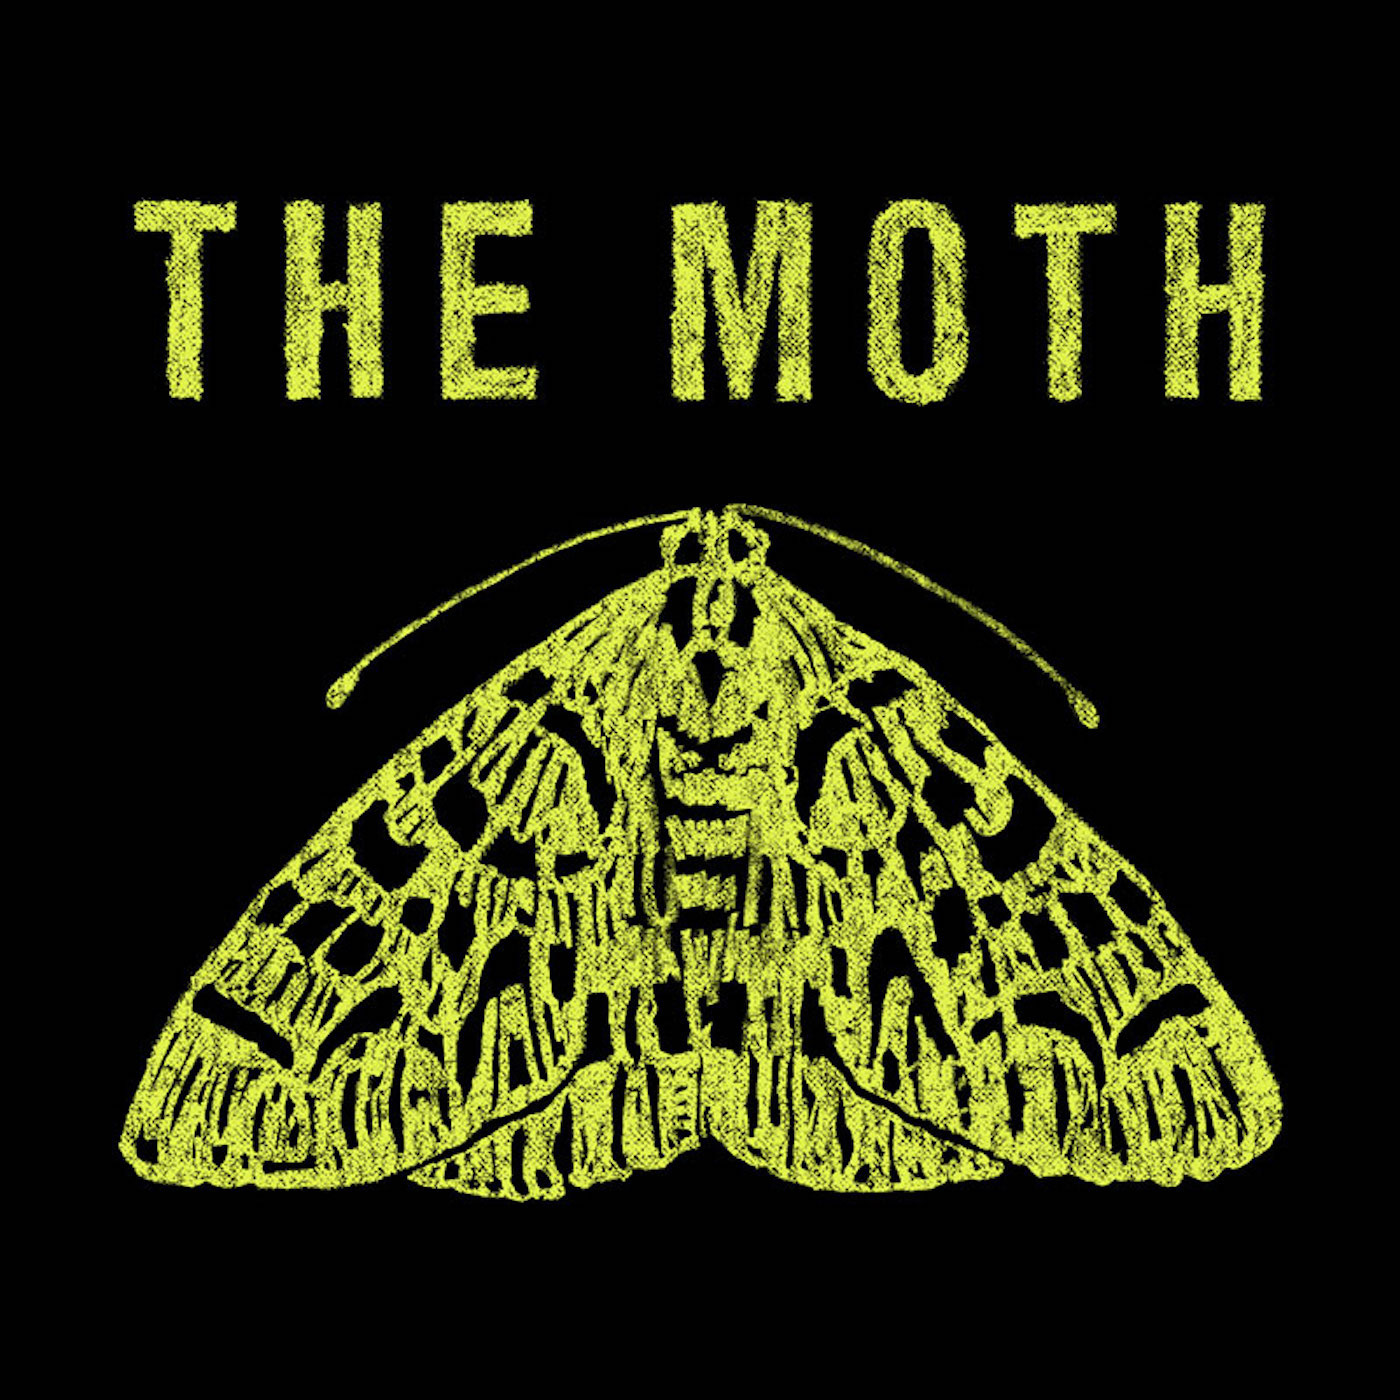 The Moth Radio Hour: Out of Step, Out of Place